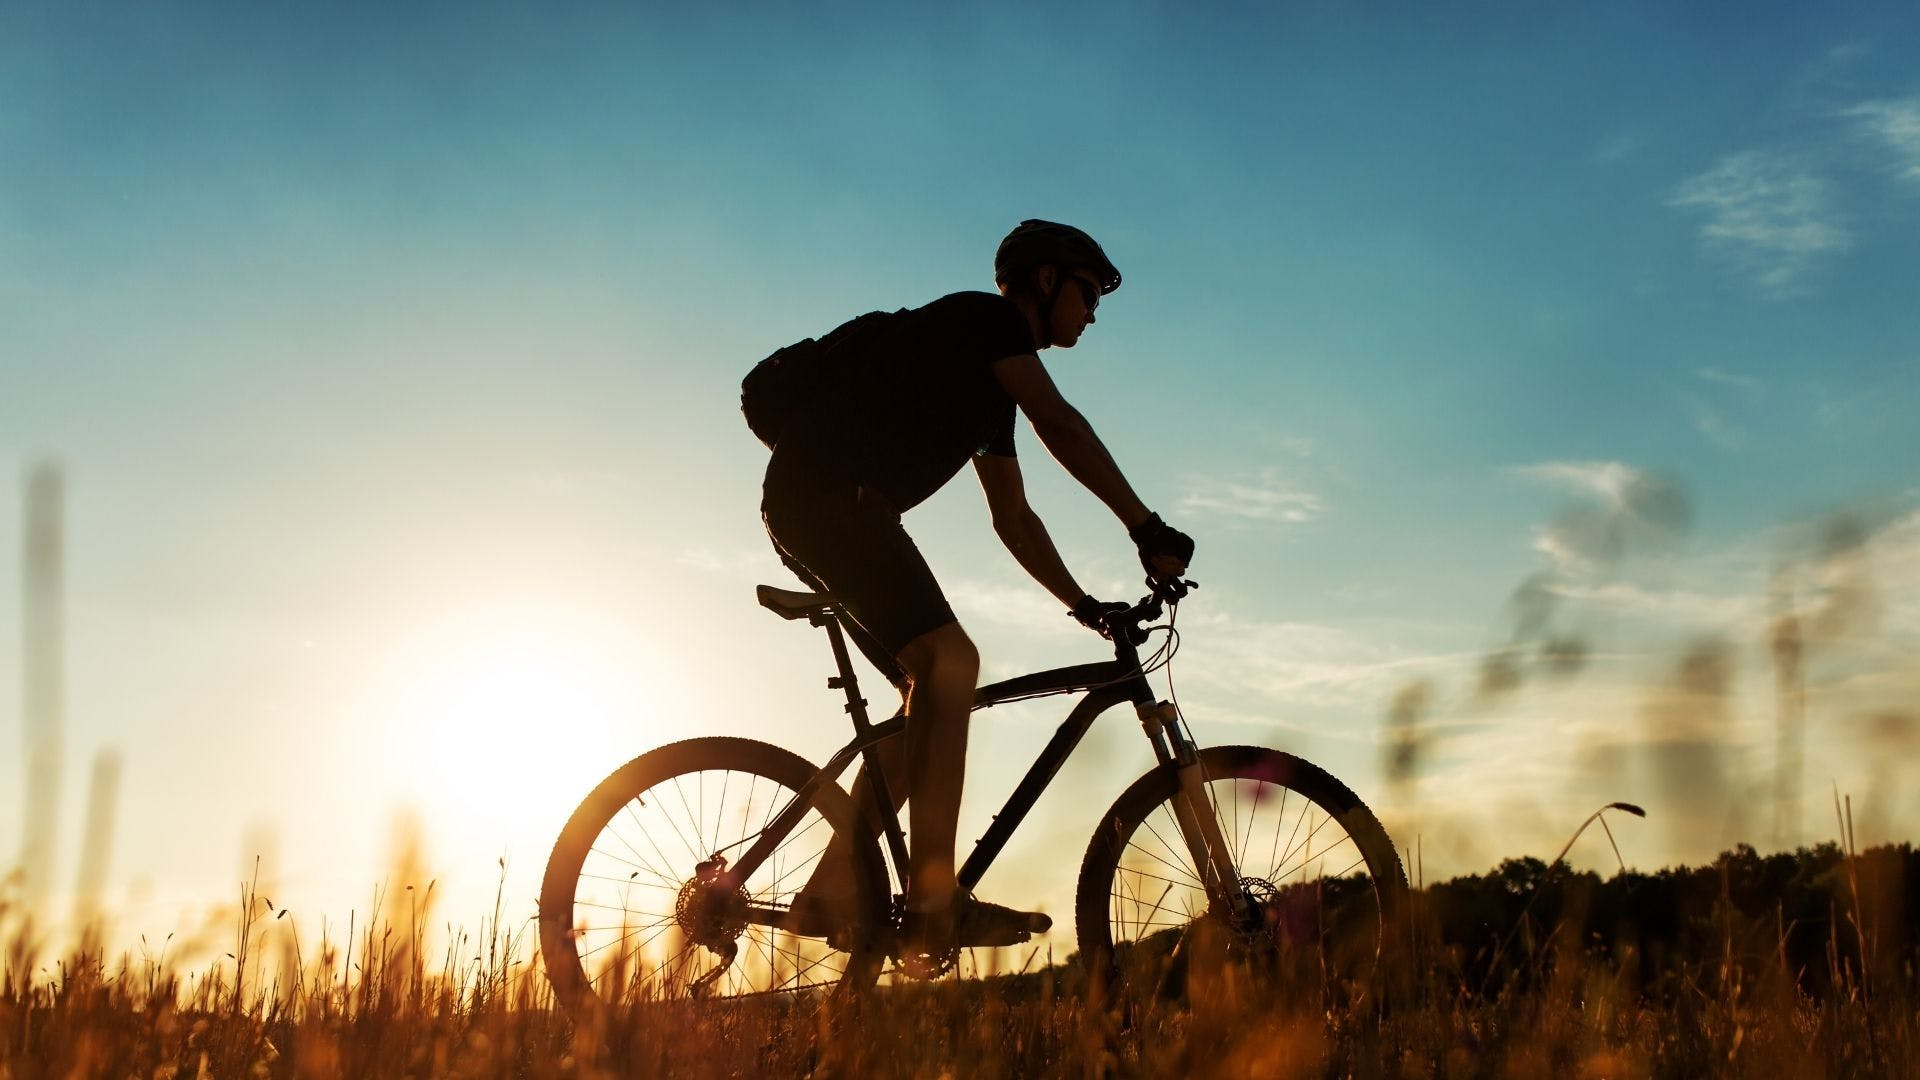 A person cycling in front of a sunset